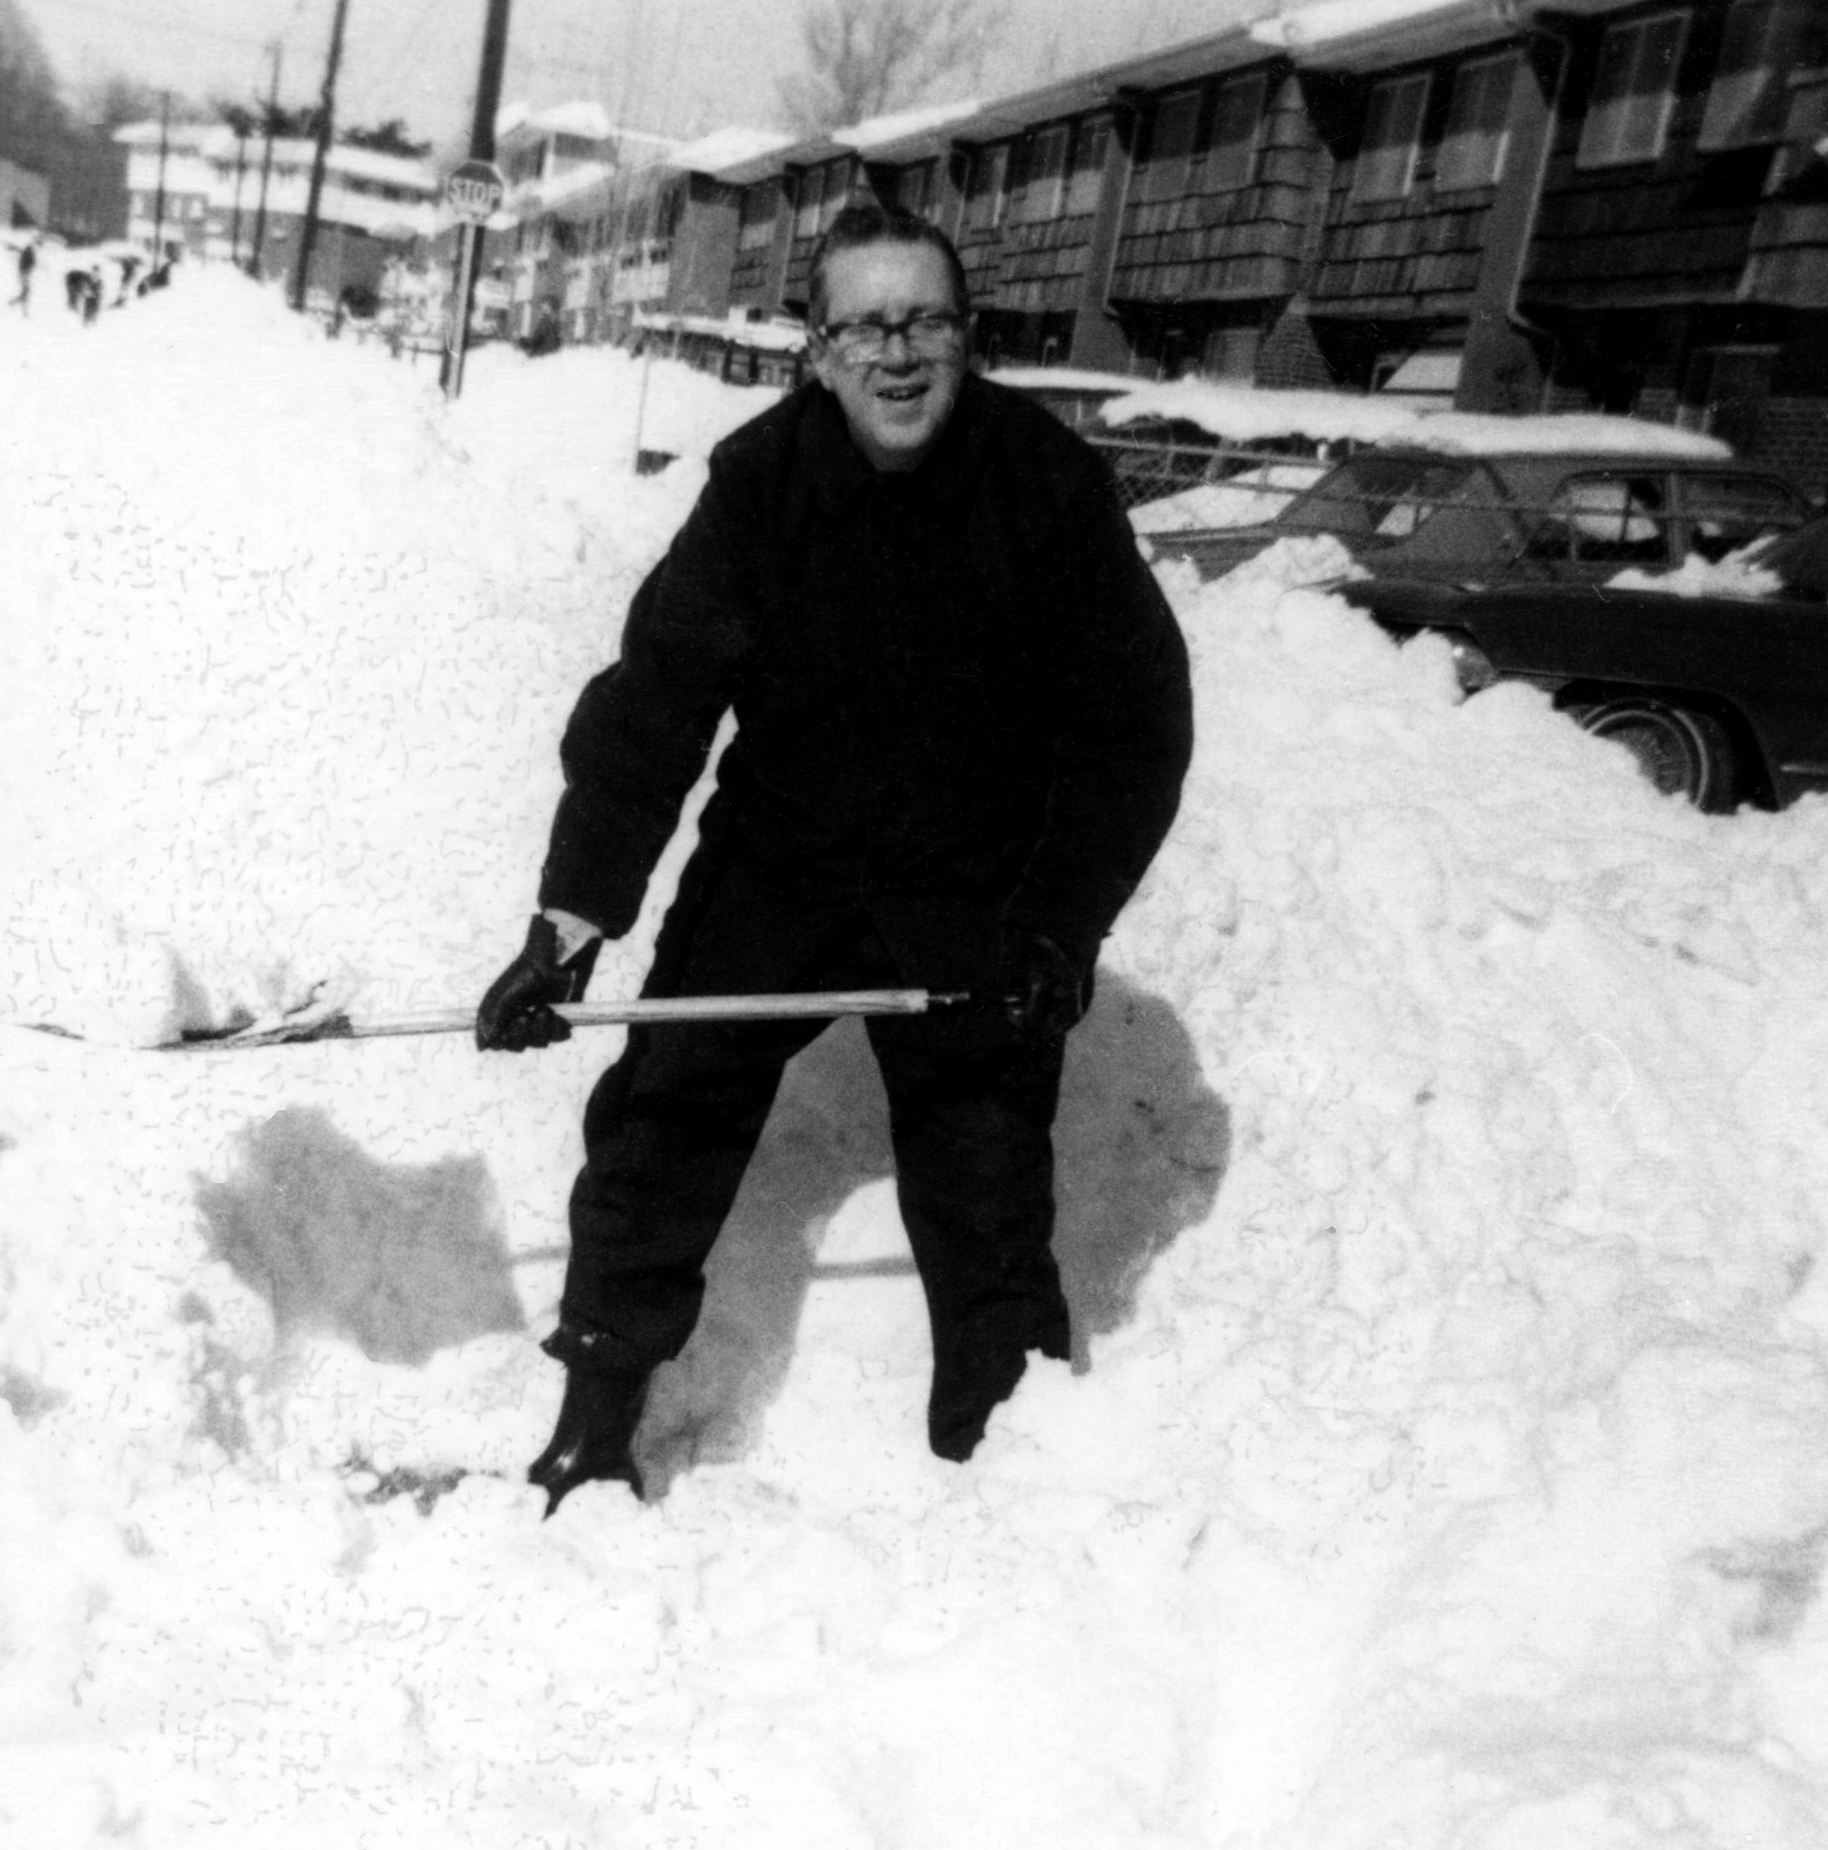 1970's New York man shoveling snow winter road trip